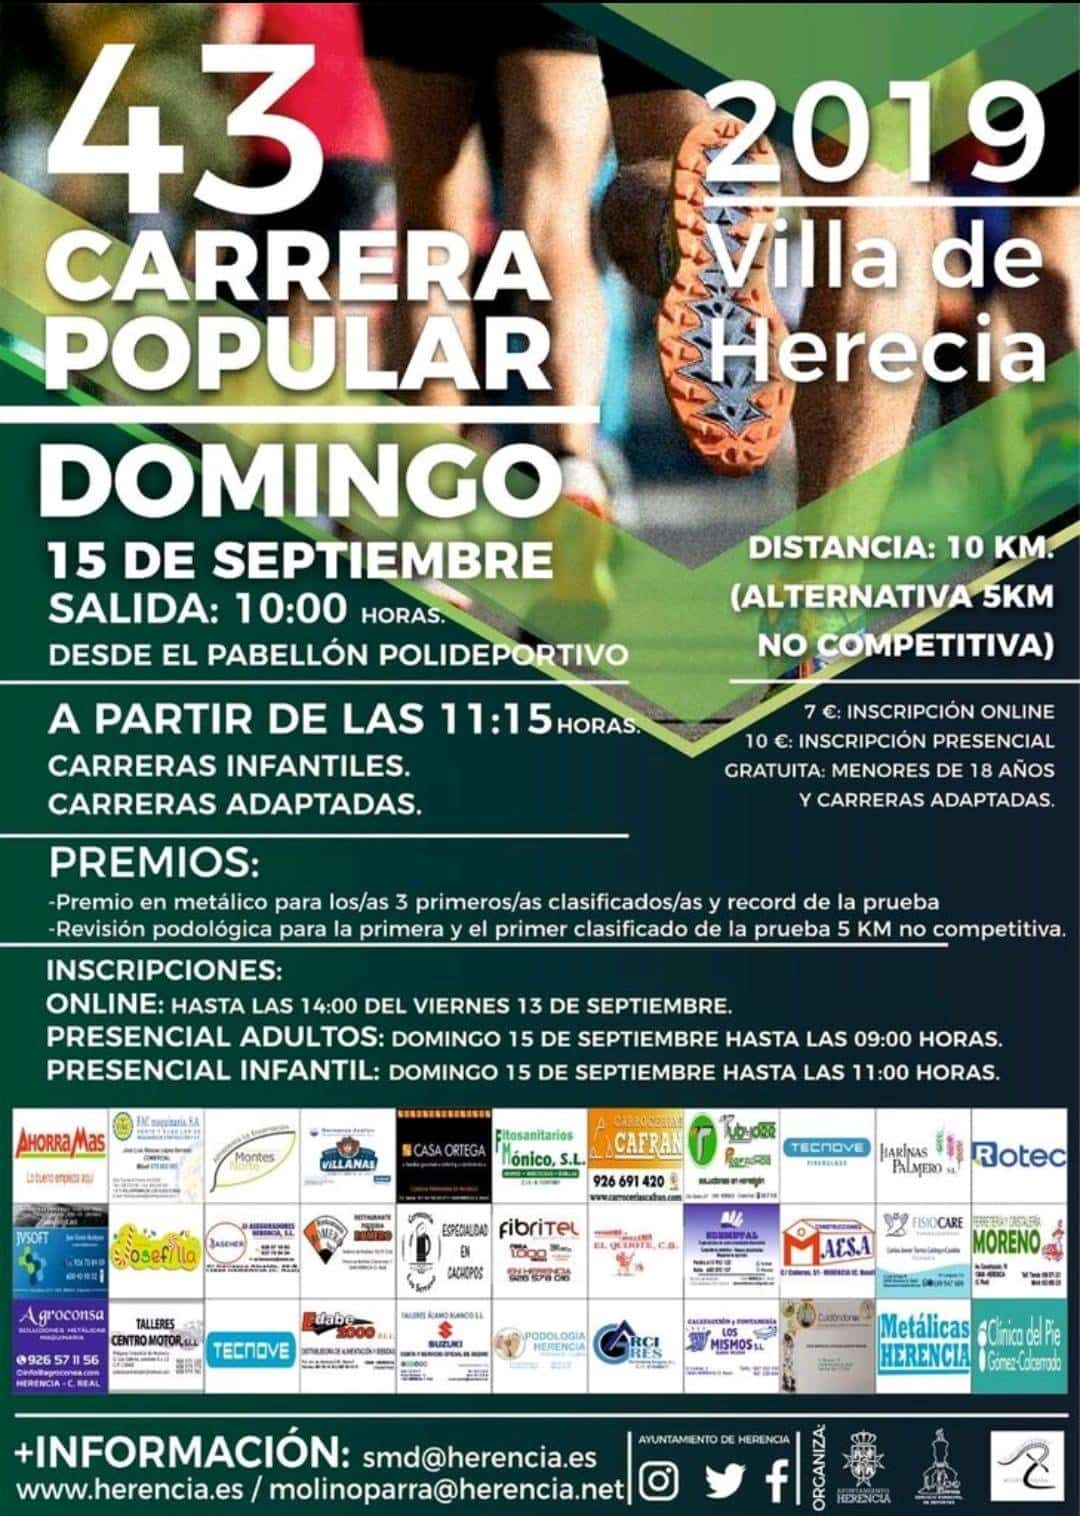 43 carrera popular herencia 2019 - Formulario de inscripción, reglamento y horarios de la 43 Carrera Popular de Herencia